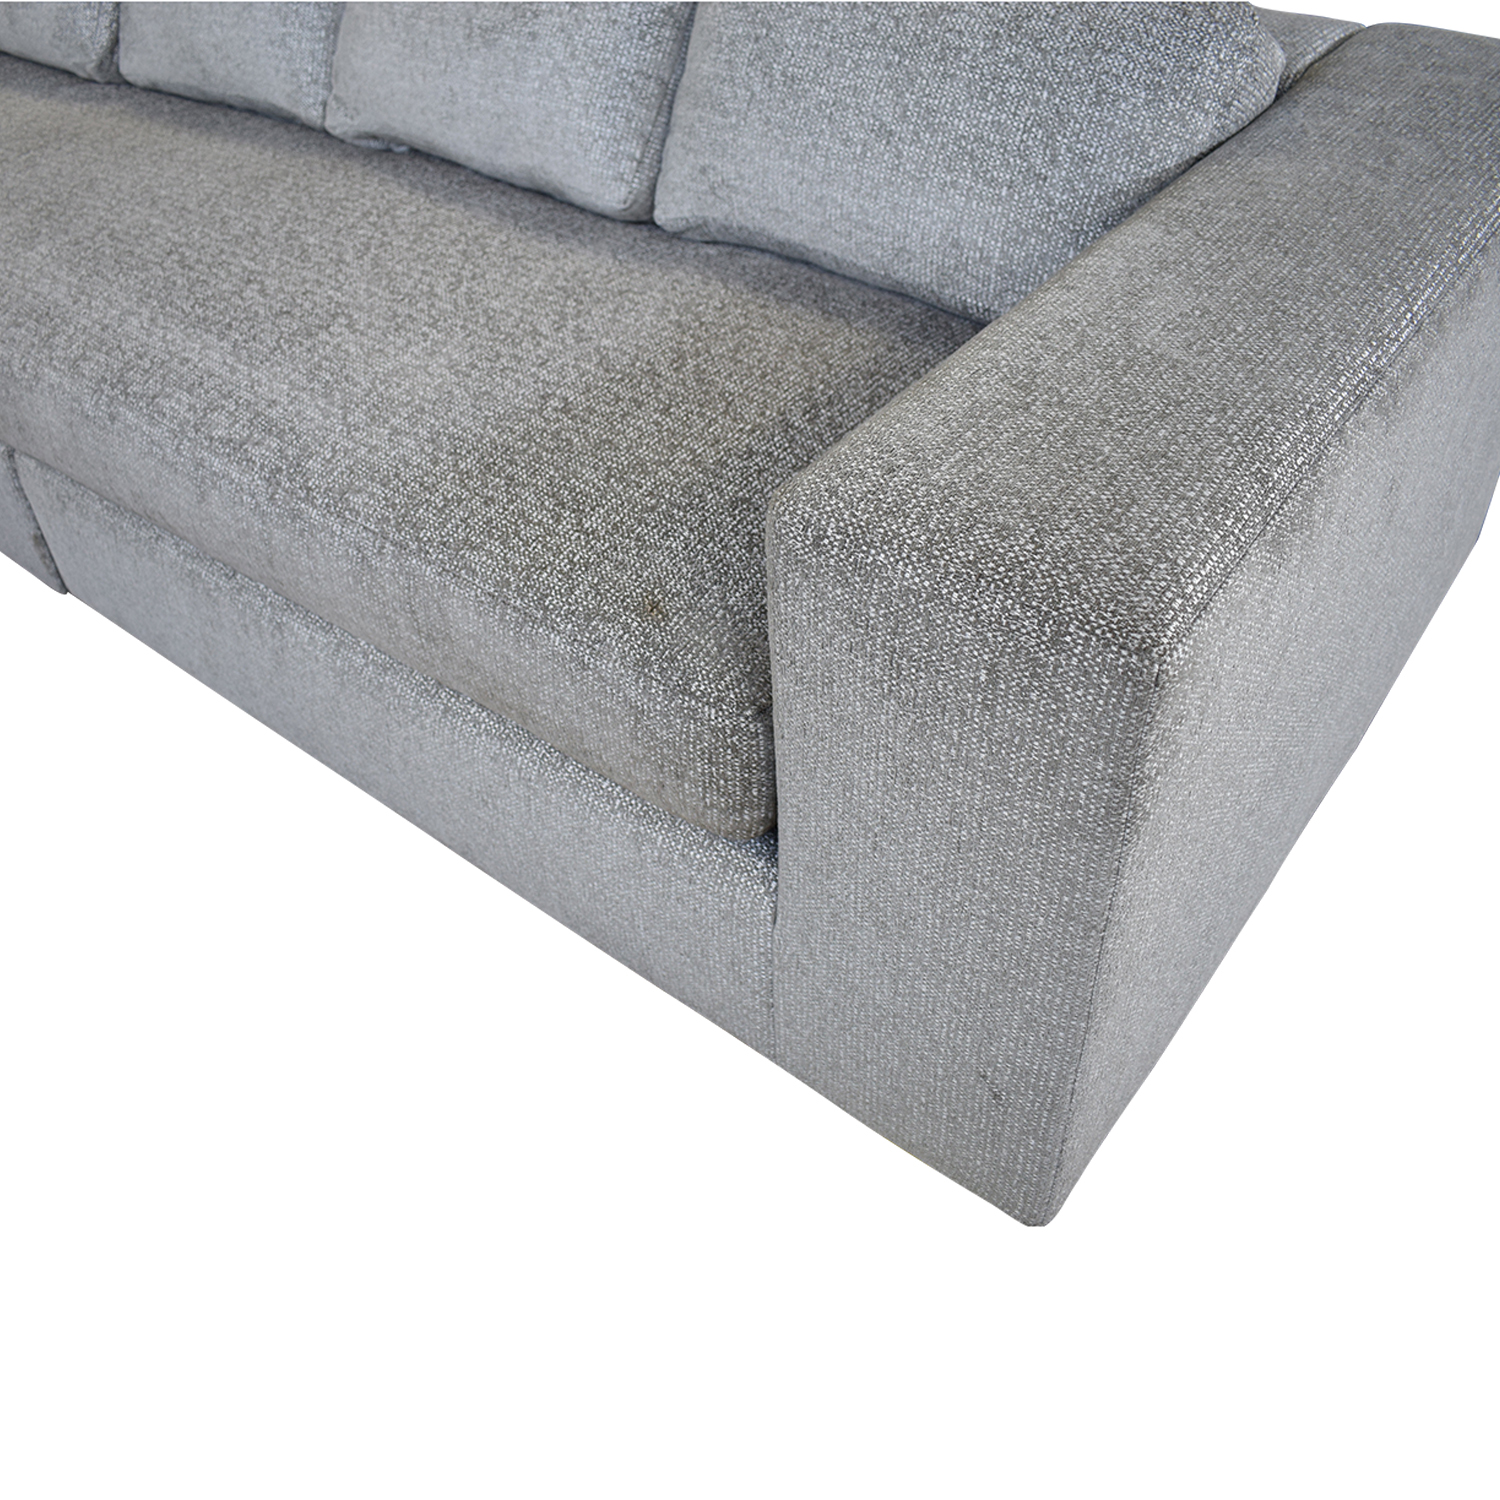 Ferrell Mittman Ferrell Mittman Cooper Sectional Sofa with Reverse Chaise coupon